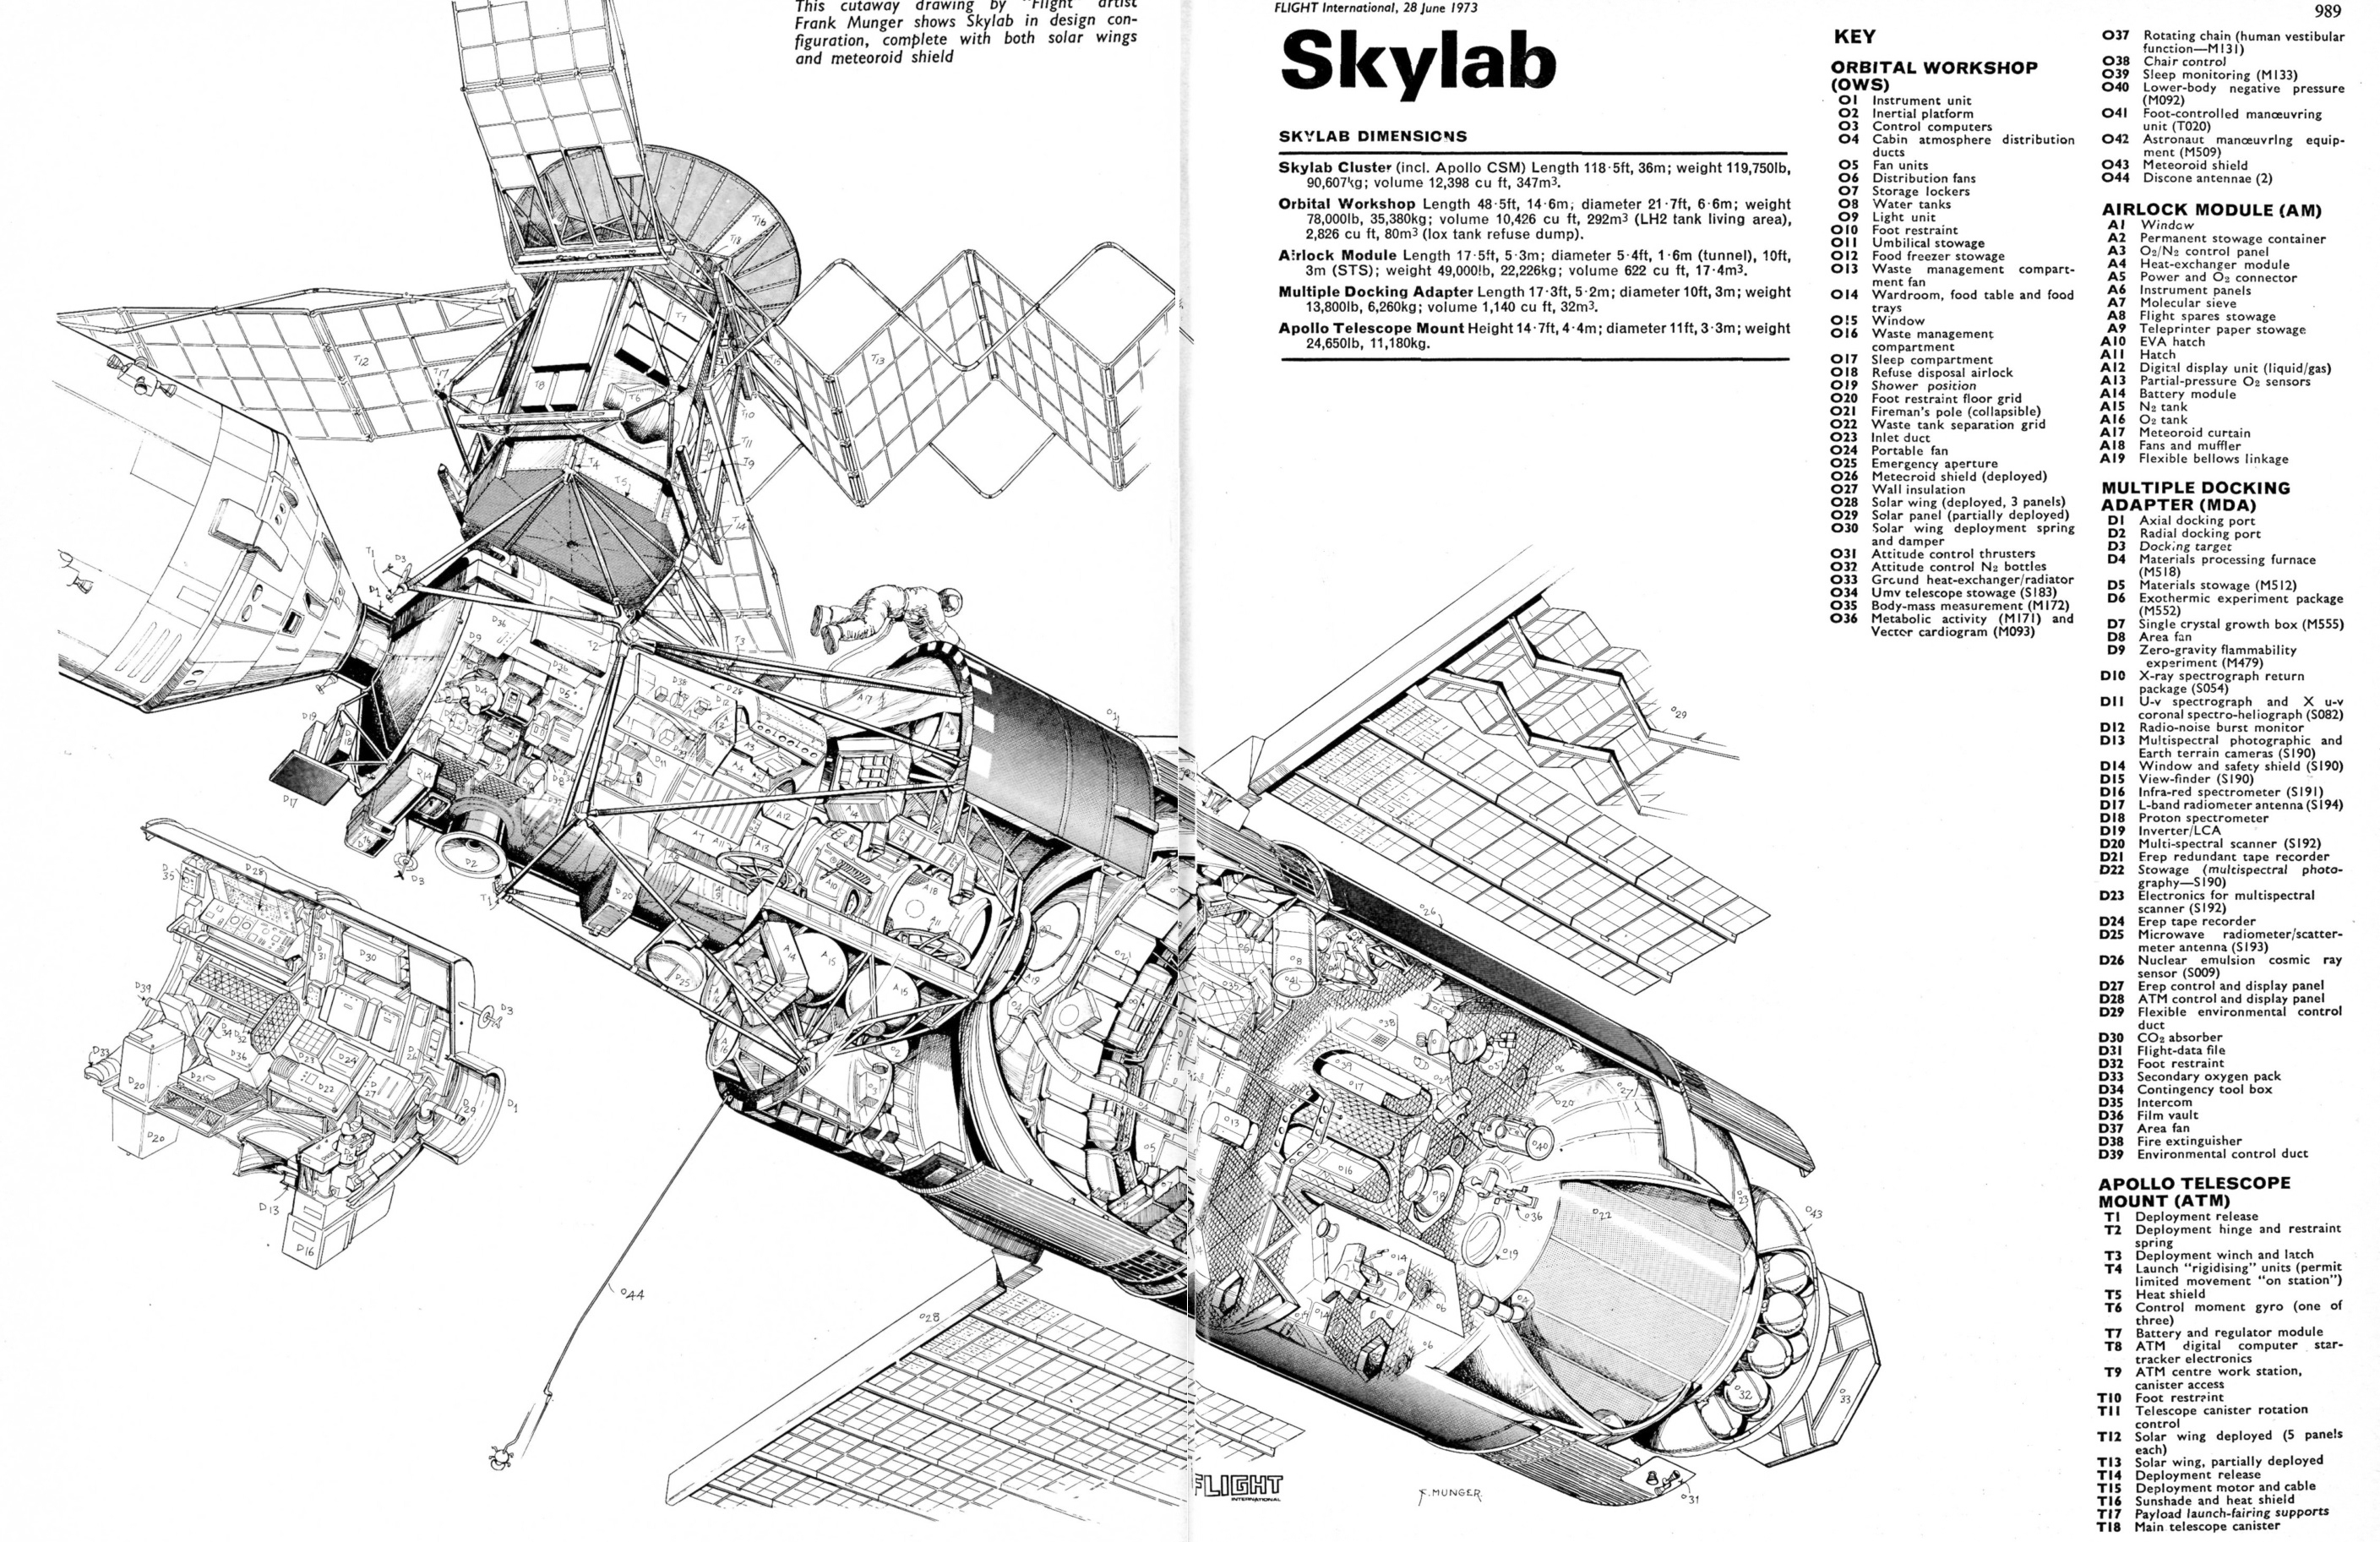 The Russian Plan To Spin Off A New Space Station From The